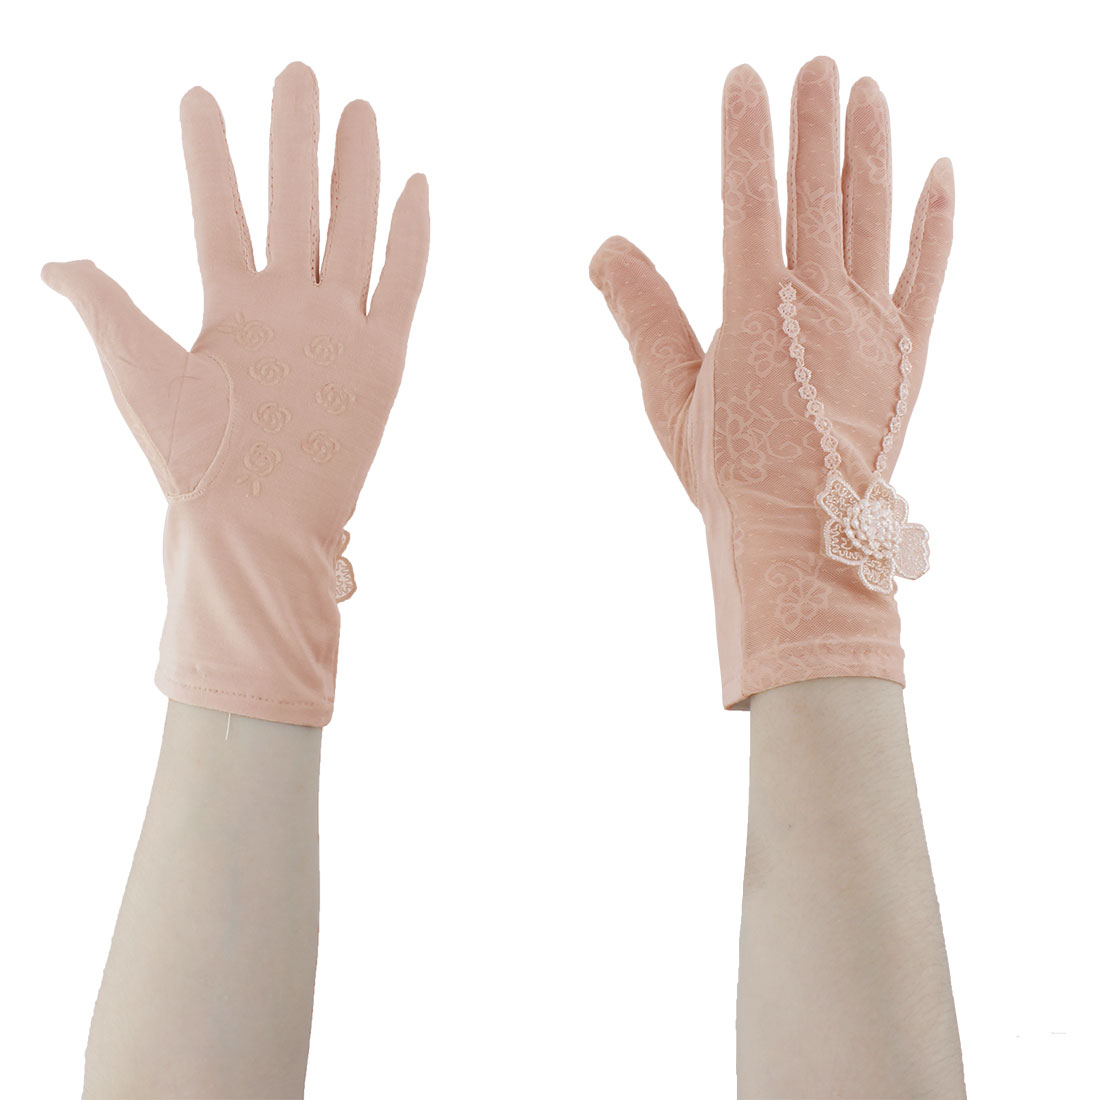 Lady Travel Cycling Lace Floral Decor Full Finger Sun Resistant Gloves Pink Pair by